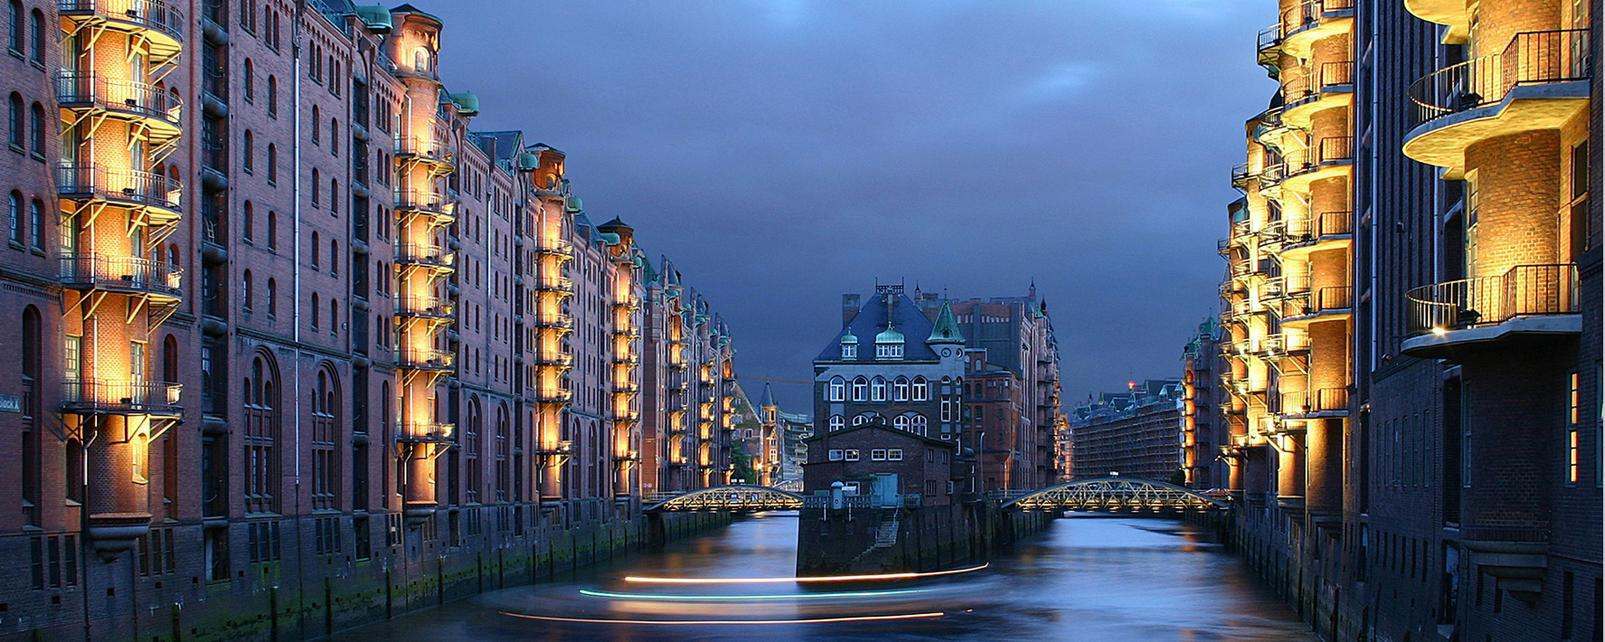 Europe; Allemagne; Hambourg;